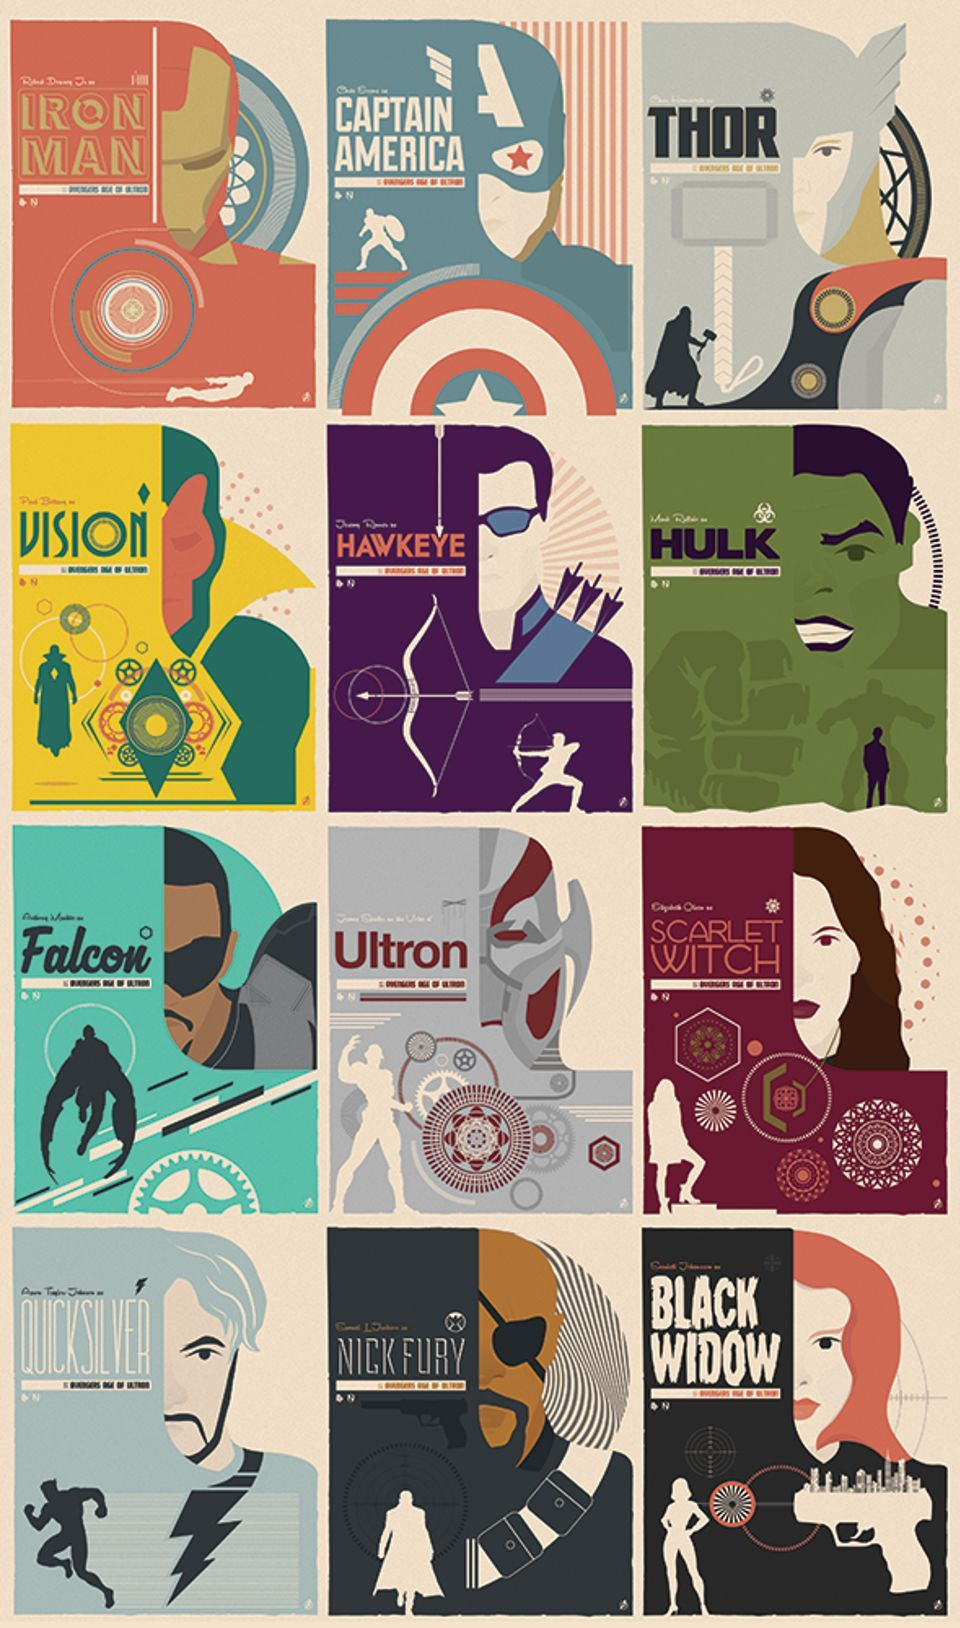 The Avengers Minimalist Character Posters by Matt Needle | moviepilot.com